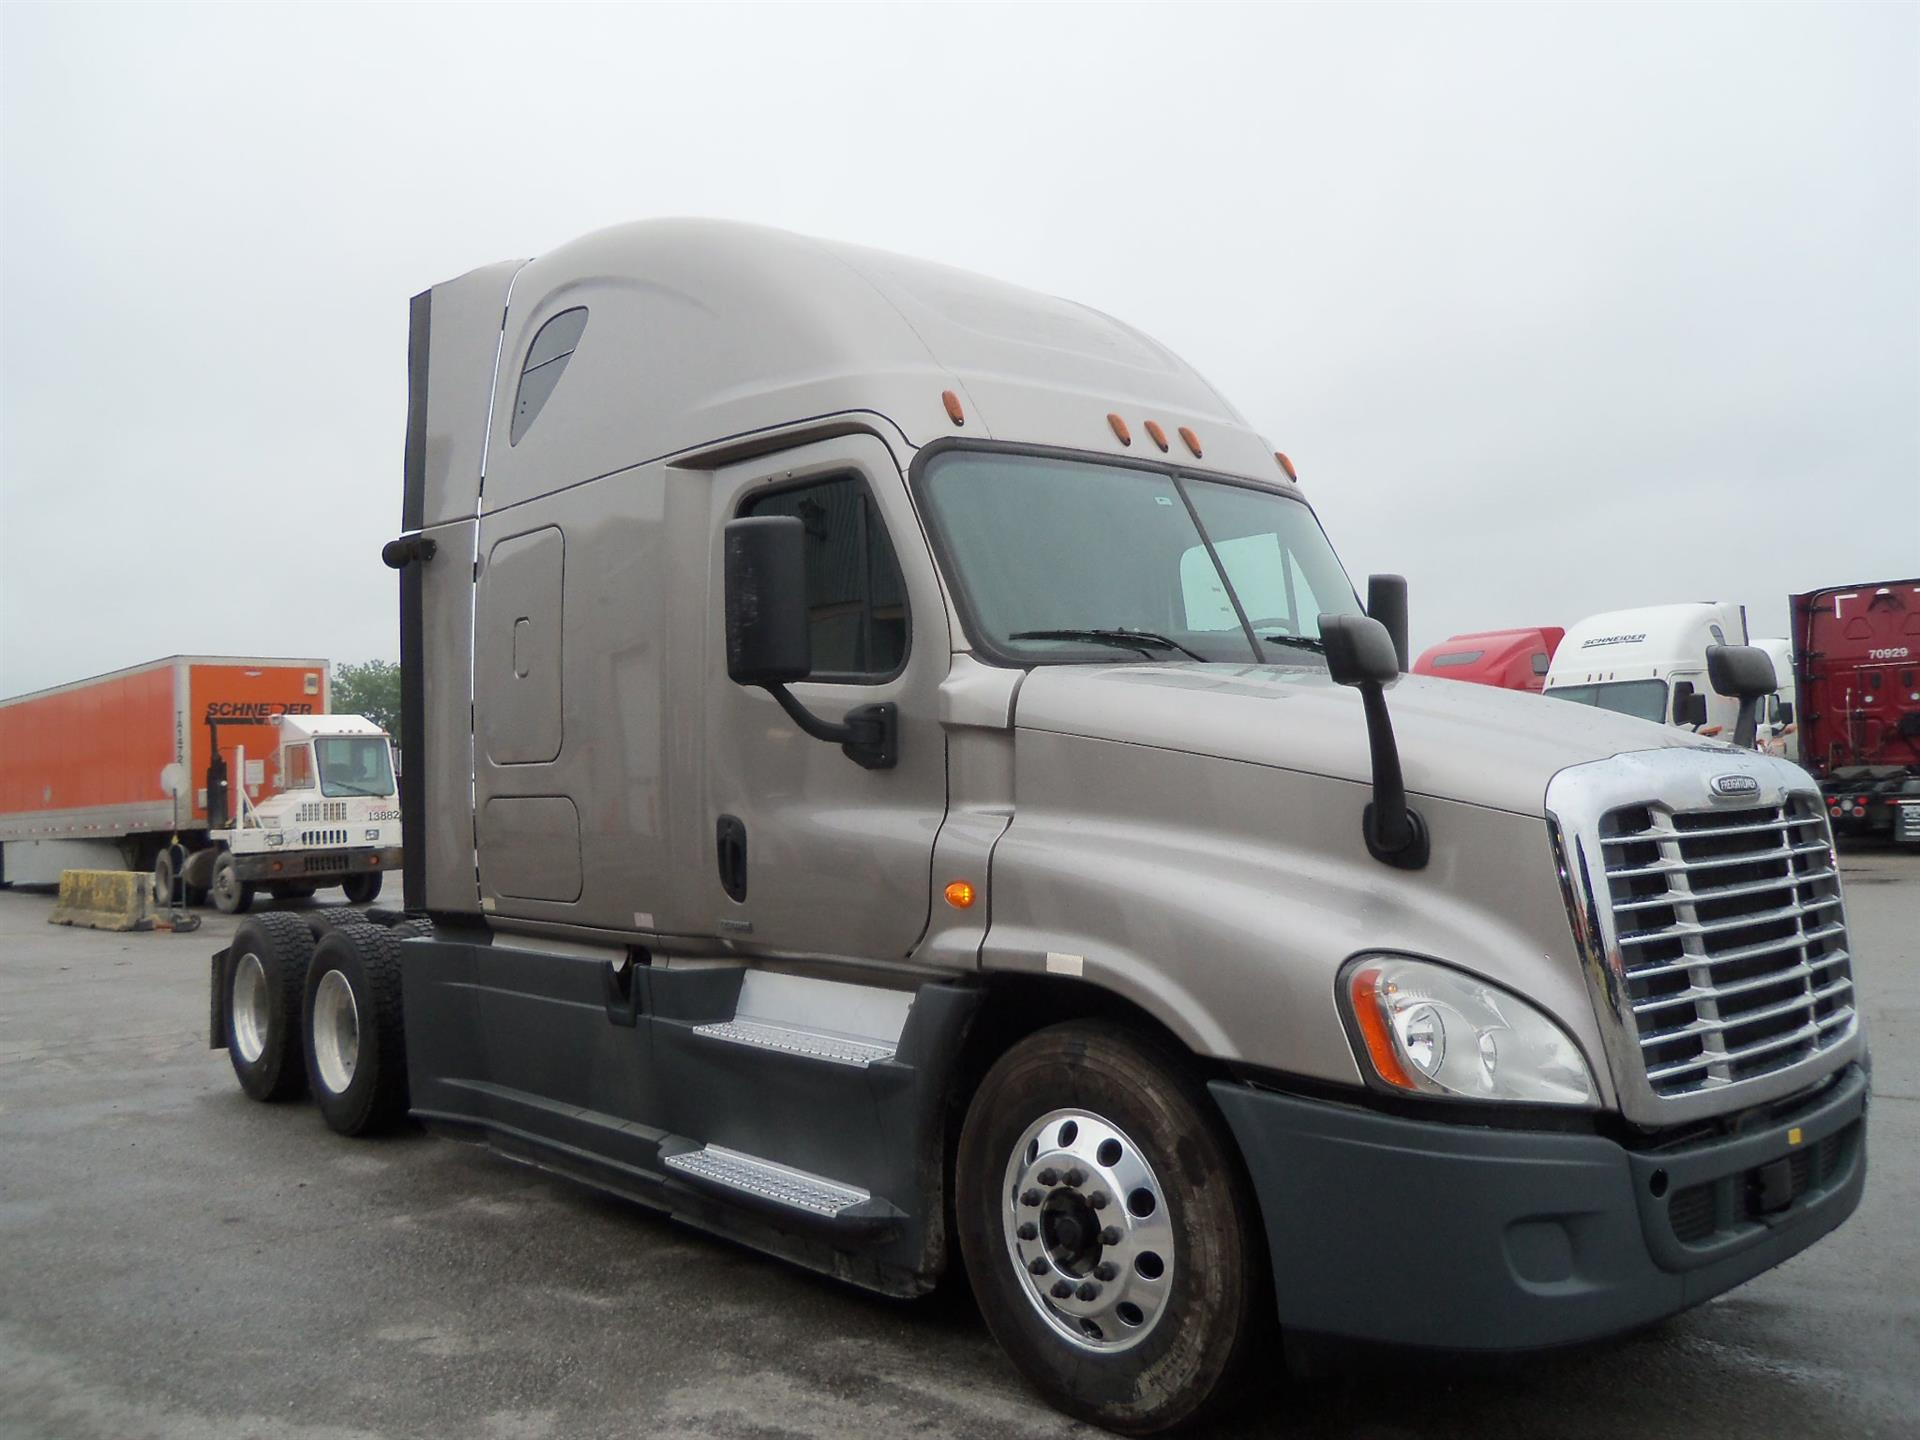 USED 2014 FREIGHTLINER CASCADIA SLEEPER TRUCK #127074